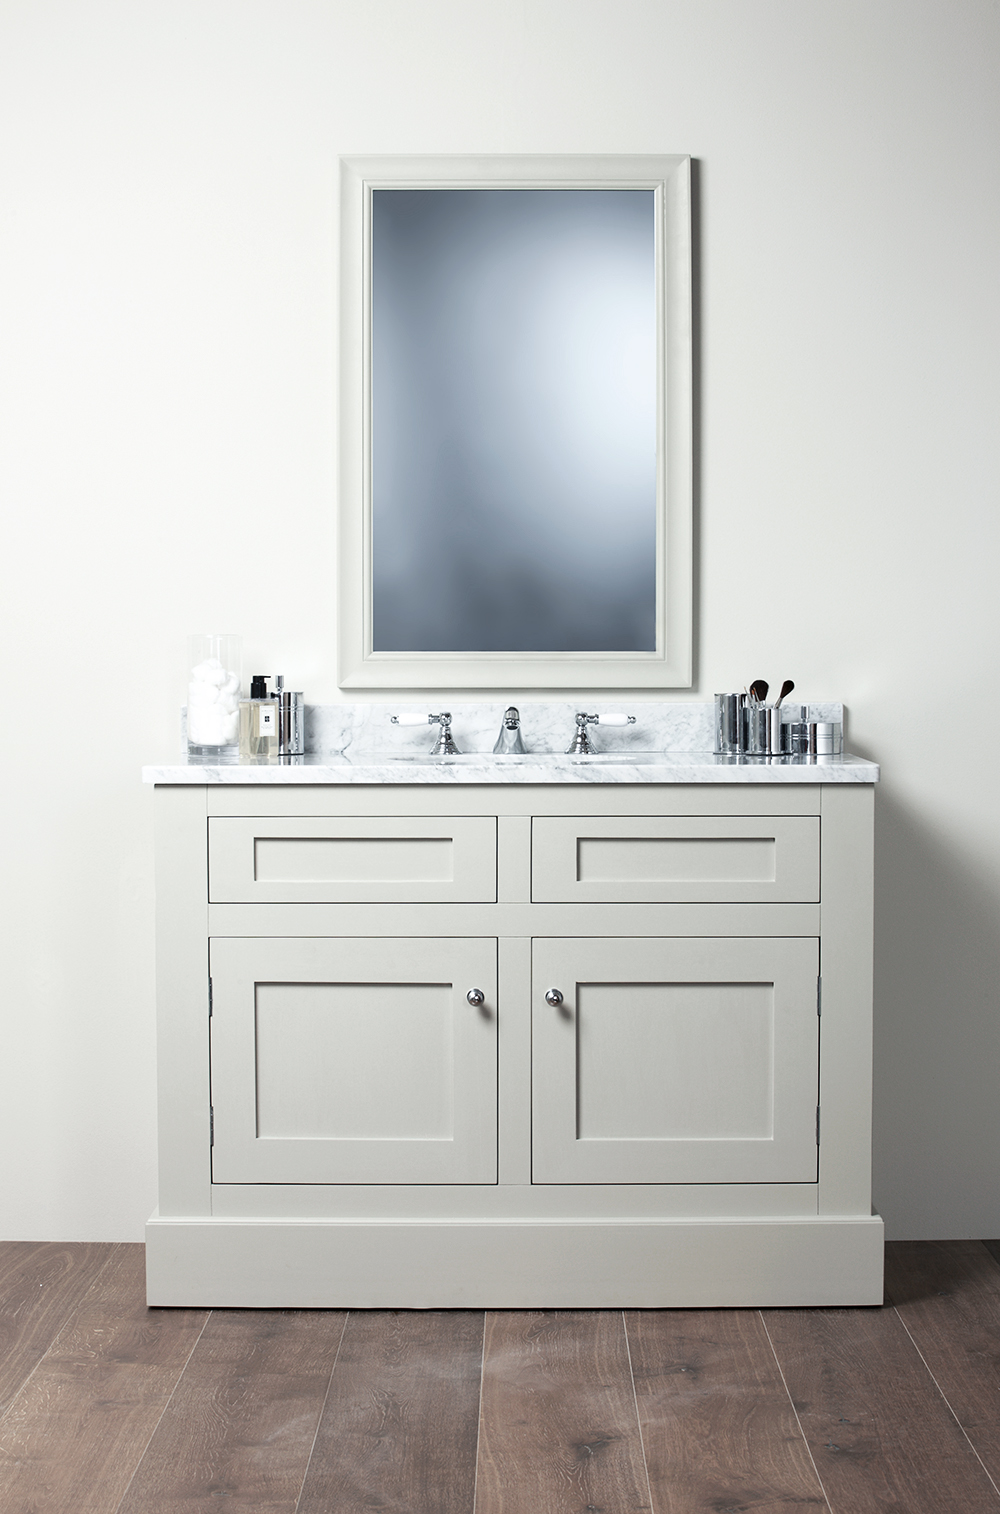 displaying 18 images for shaker bathroom cabinets